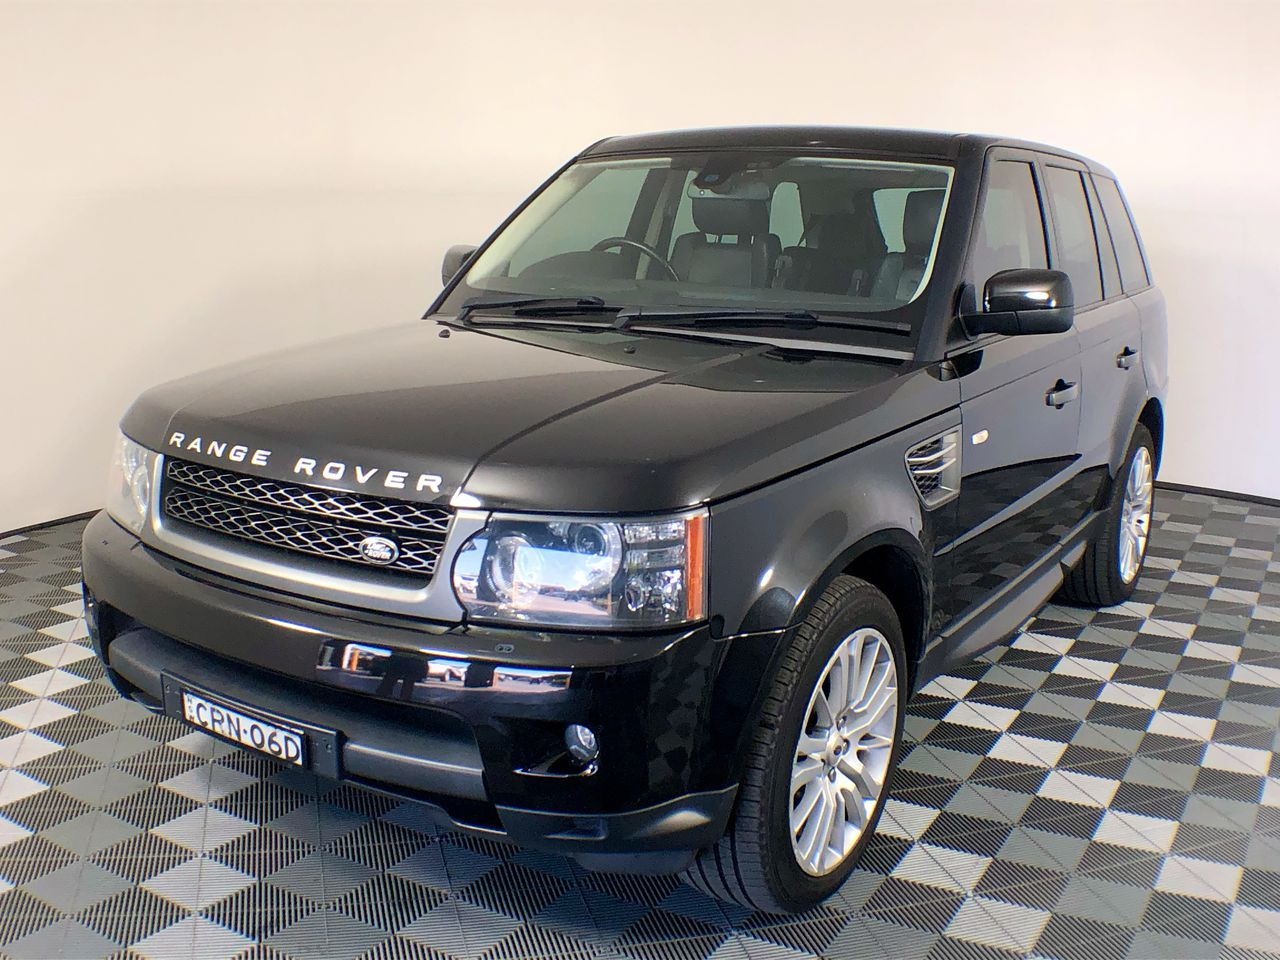 2009 Land Rover Range Rover Sport 3.0 TDV6 Turbo Diesel Automatic Wagon